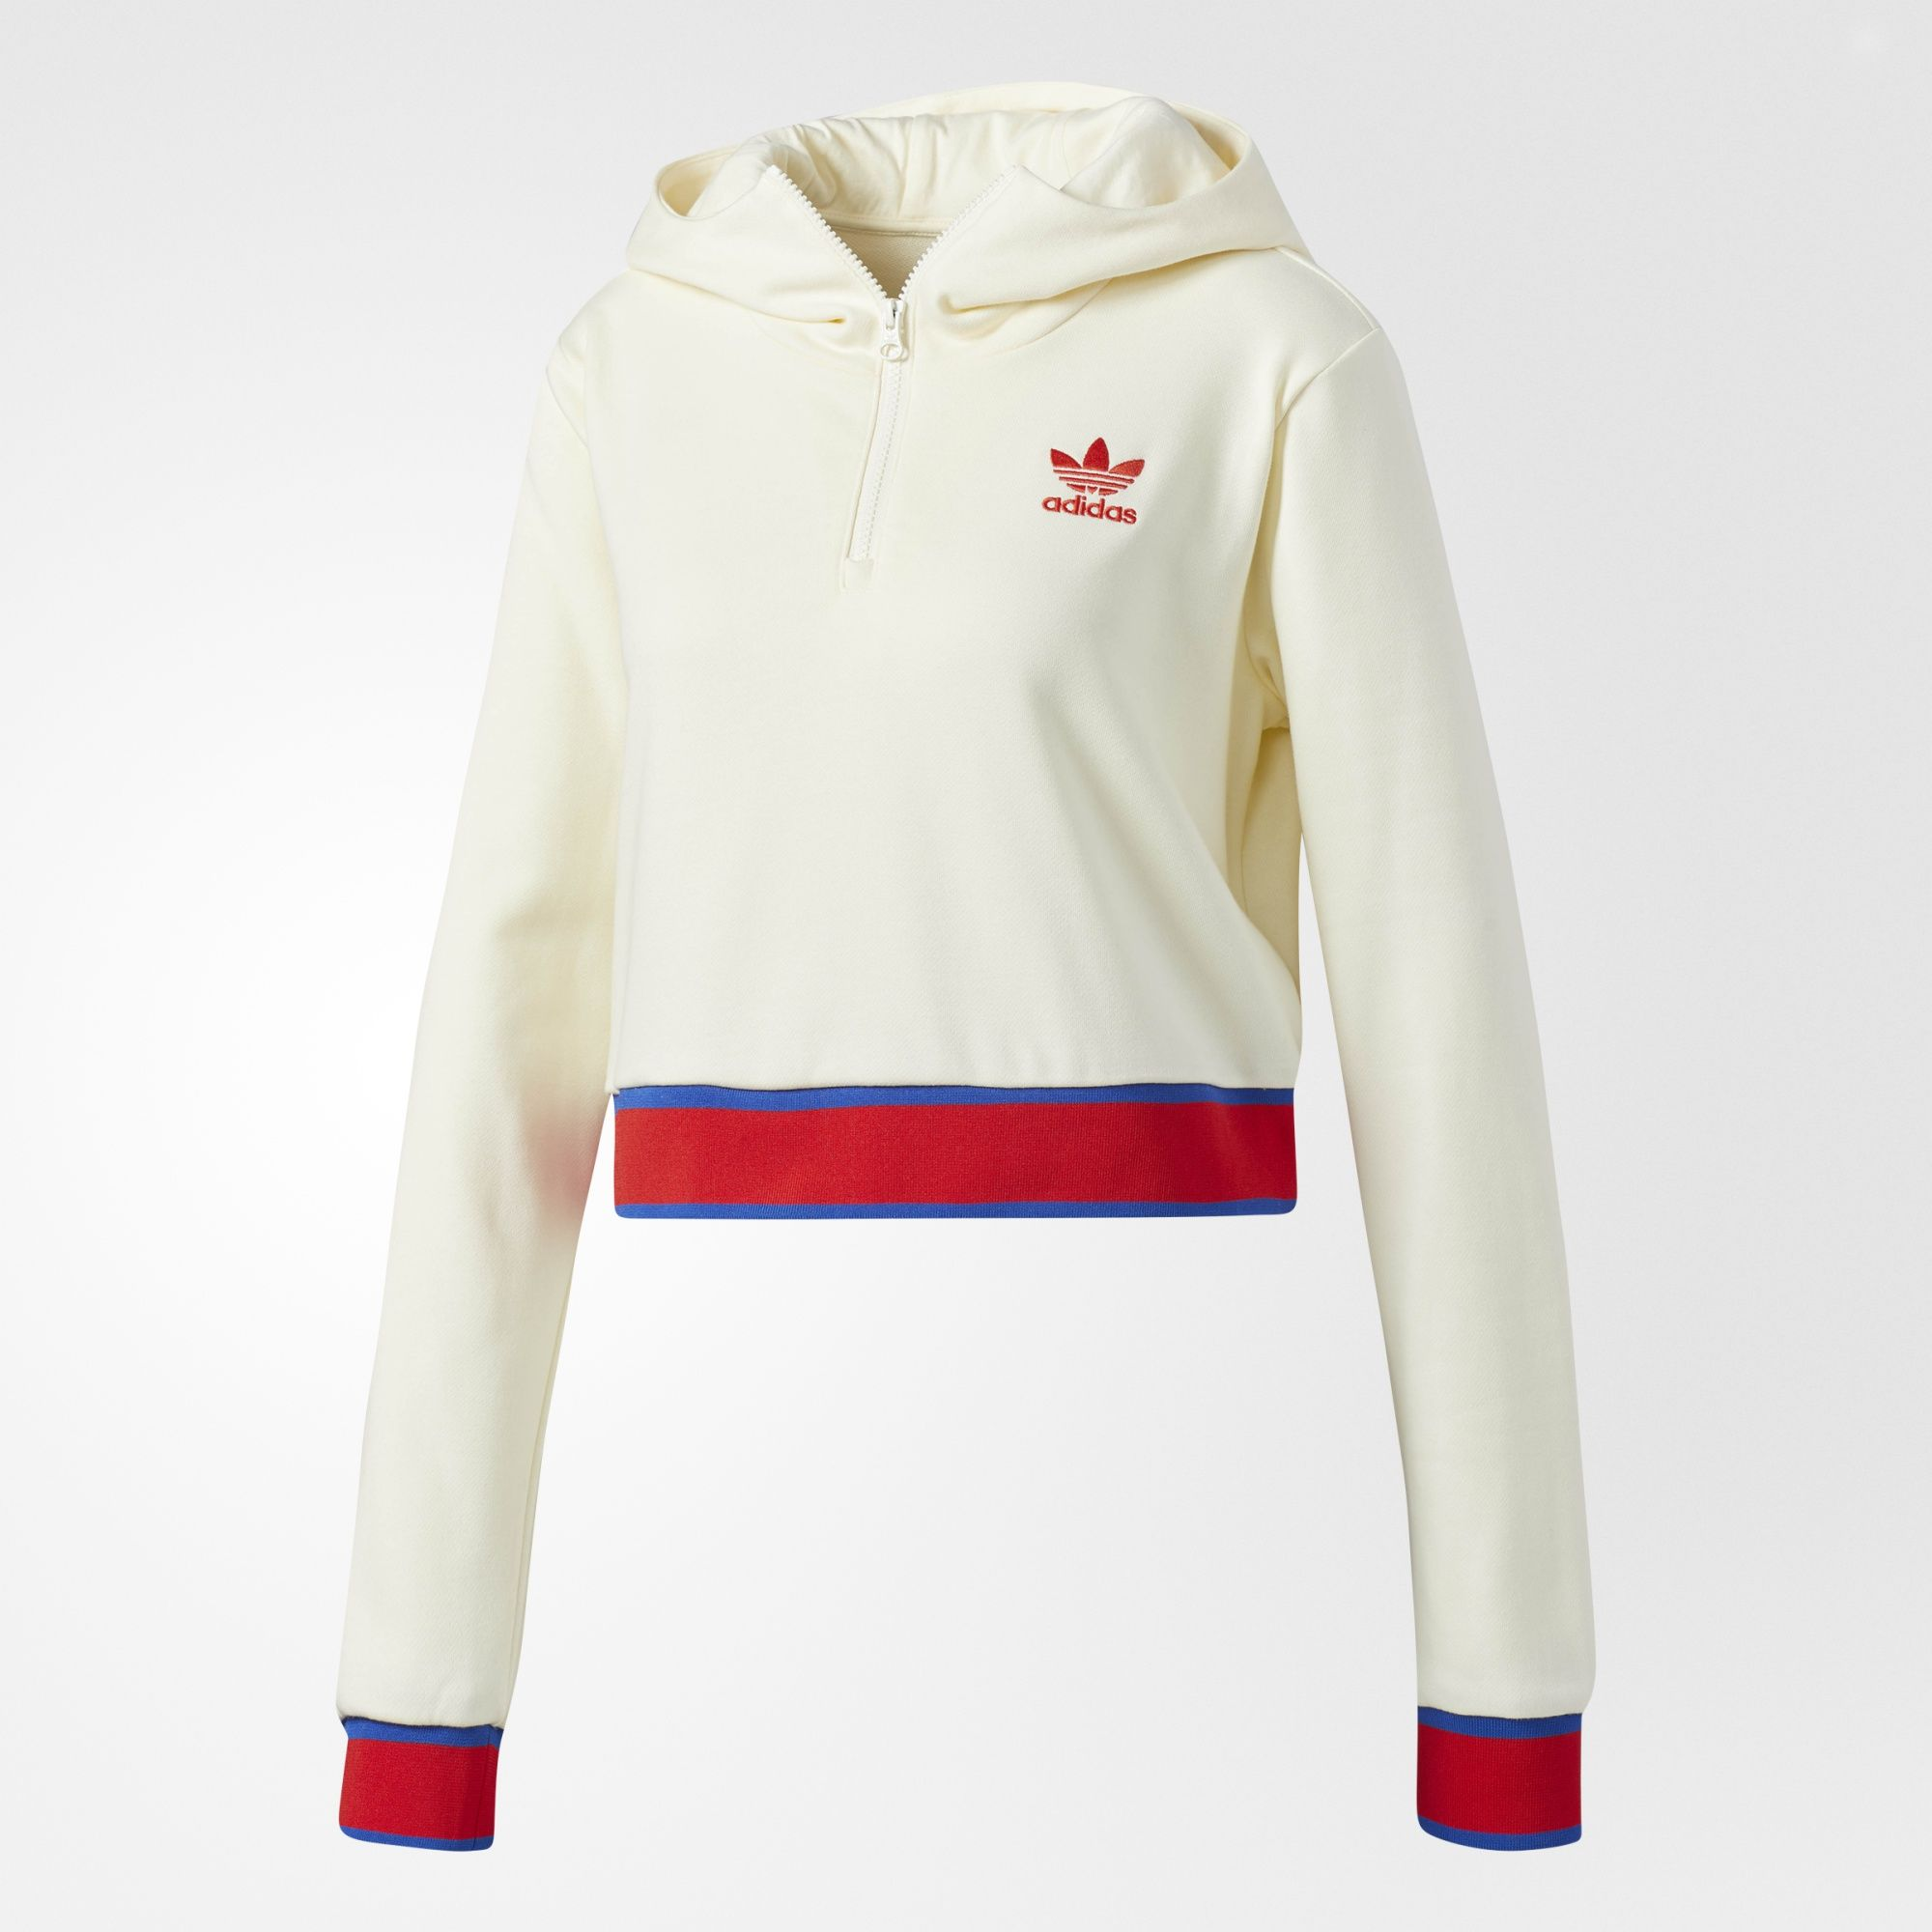 Adidas Original Embellished Arts Womens Cropped Hoodie CV9437 Cream White Short Jacket Graphic Hoody